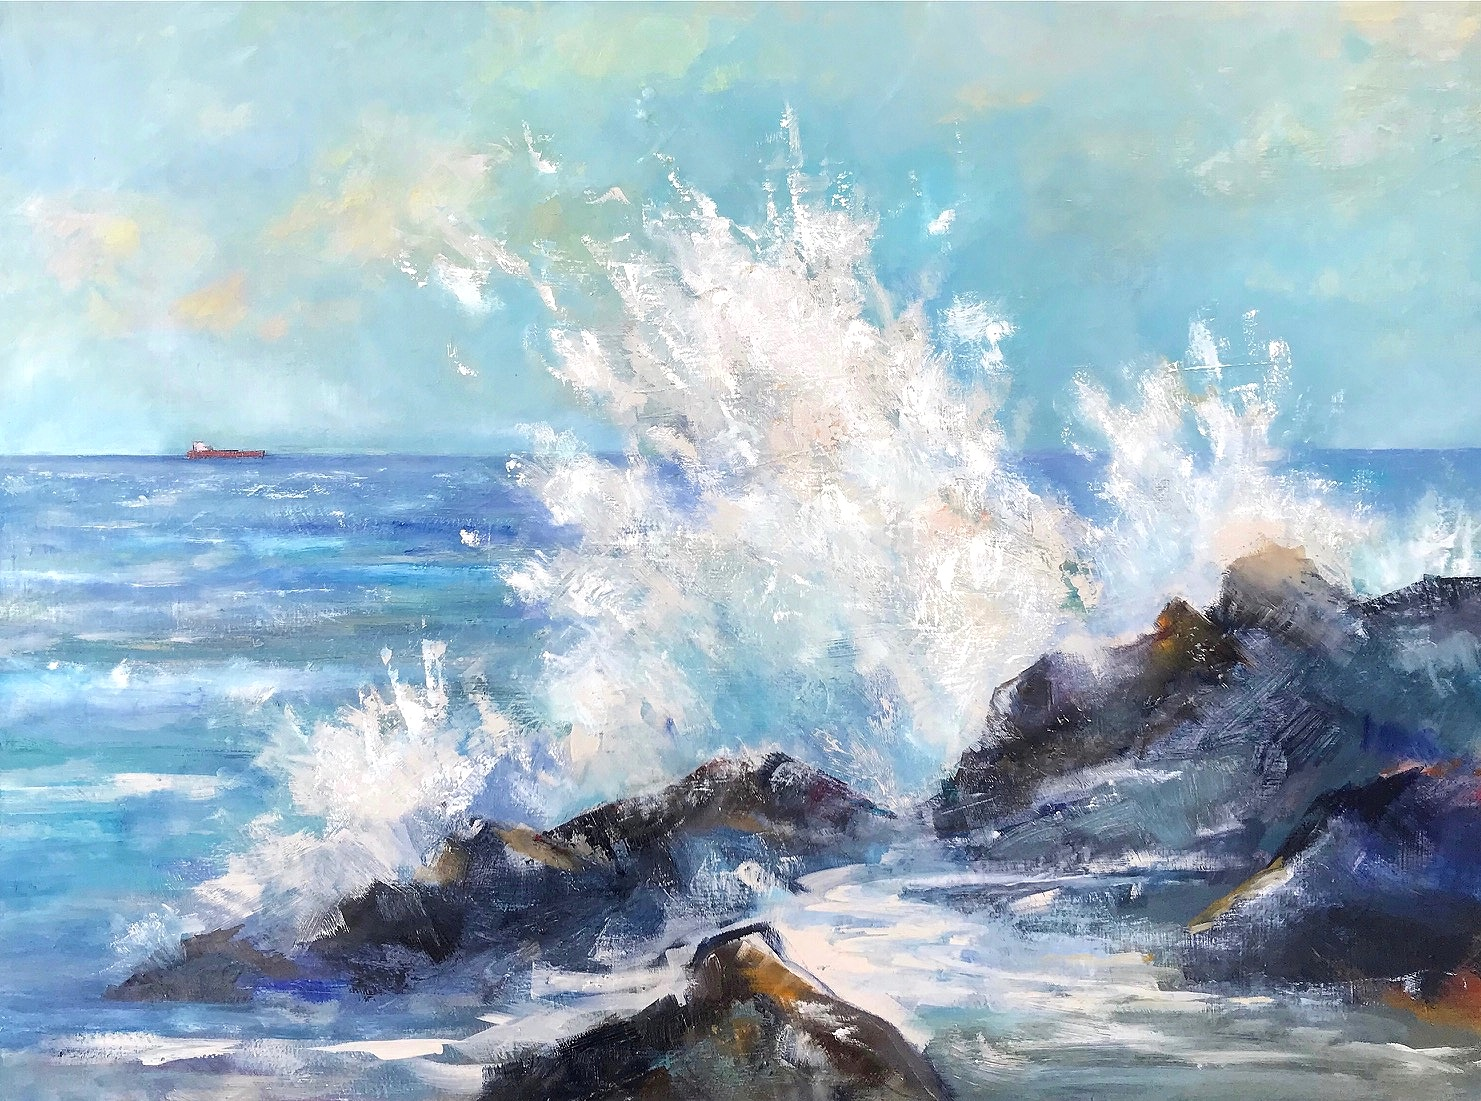 Crashing Wave - 80cm x 60cm, Oil on Box Canvas£1,200 (Unframed)